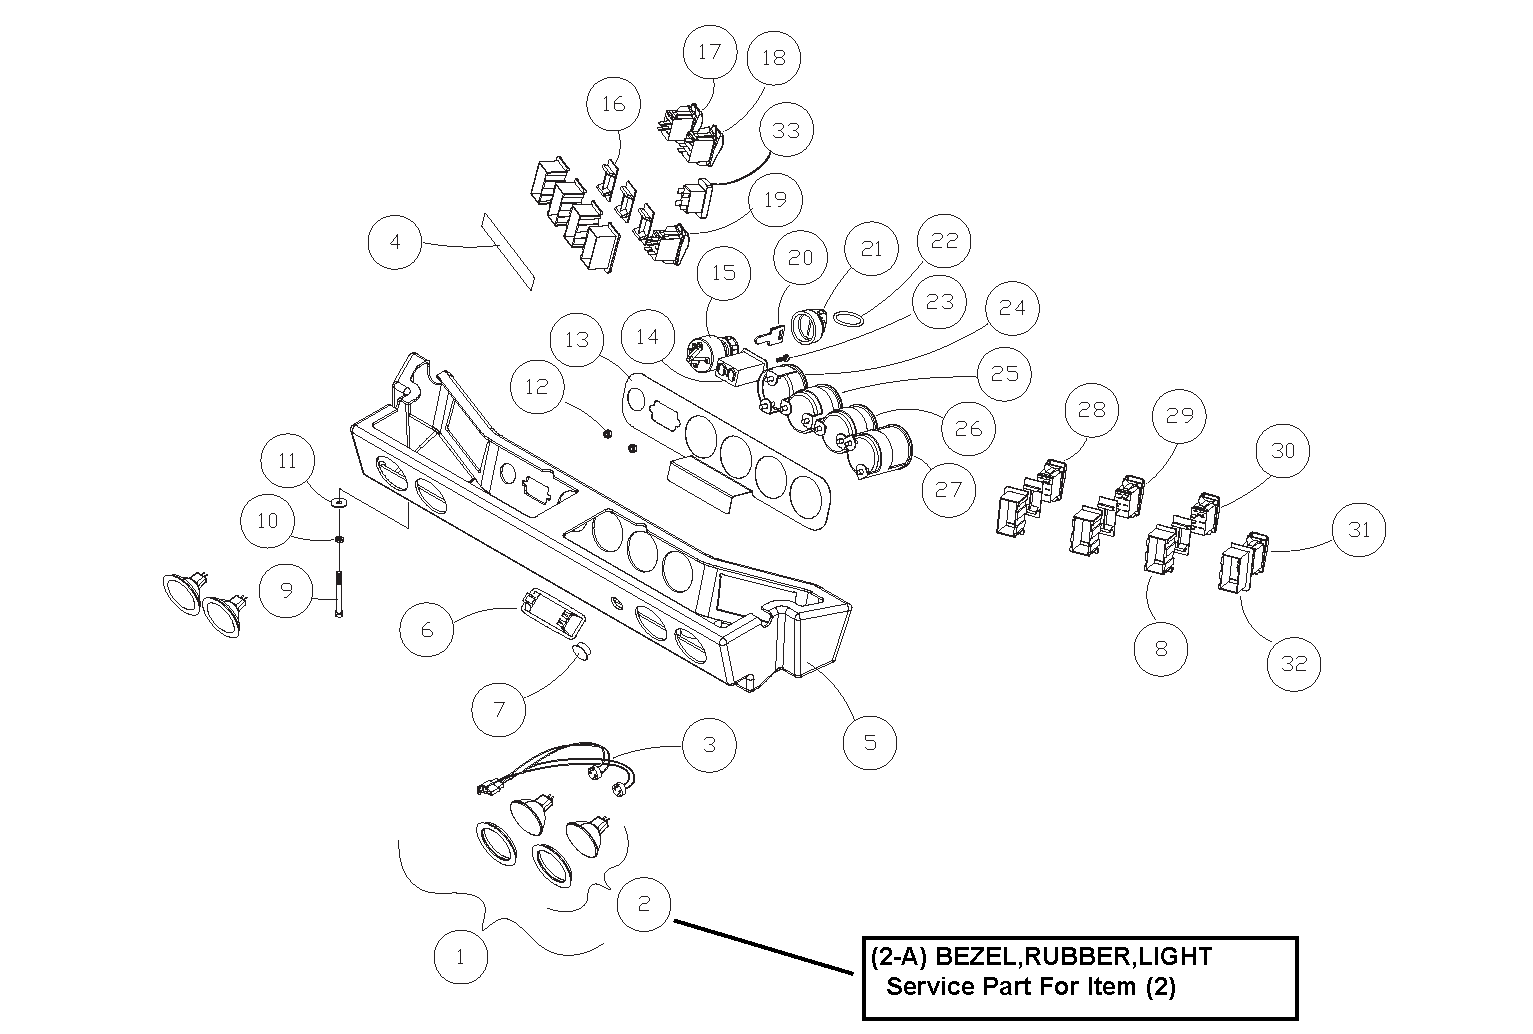 ASV RT50 OEM Parts Diagrams